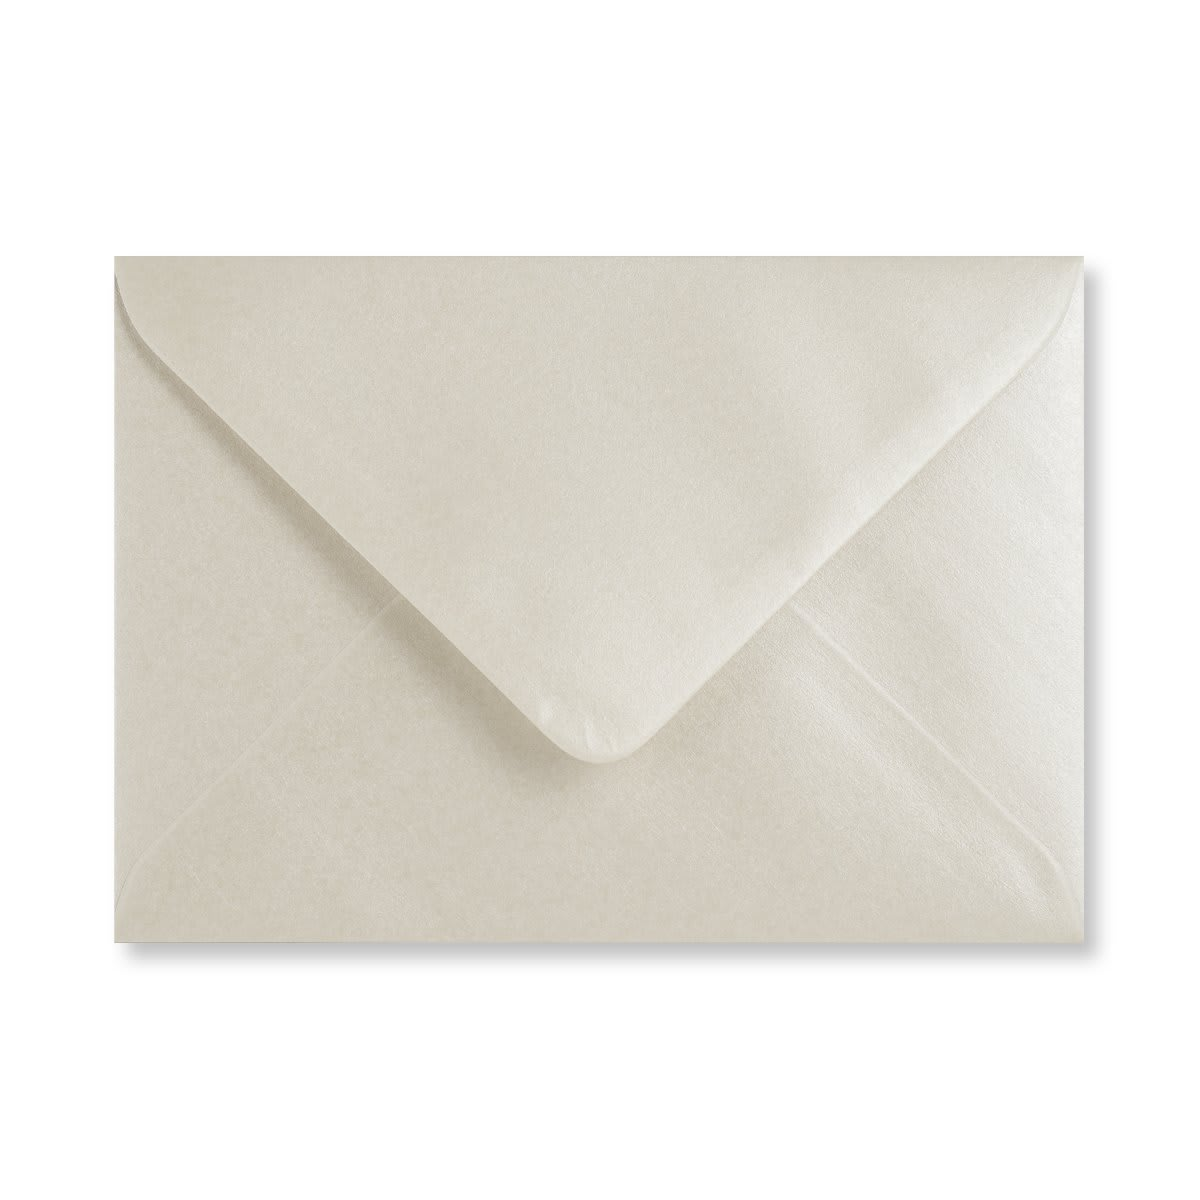 C6 PEARL OYSTER WHITE ENVELOPES